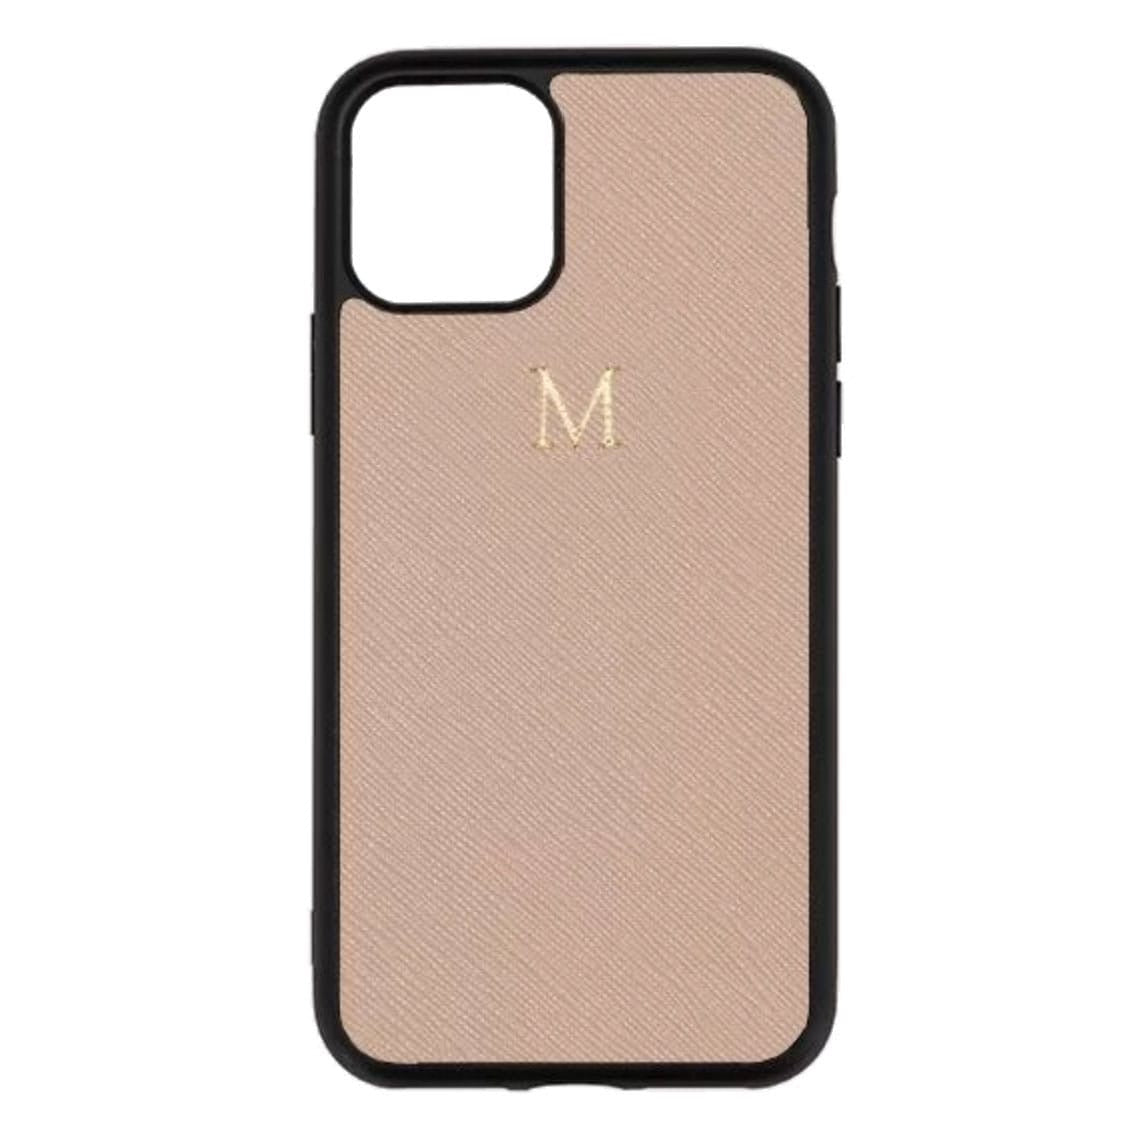 iPhone 11 Pro Case in Taupe